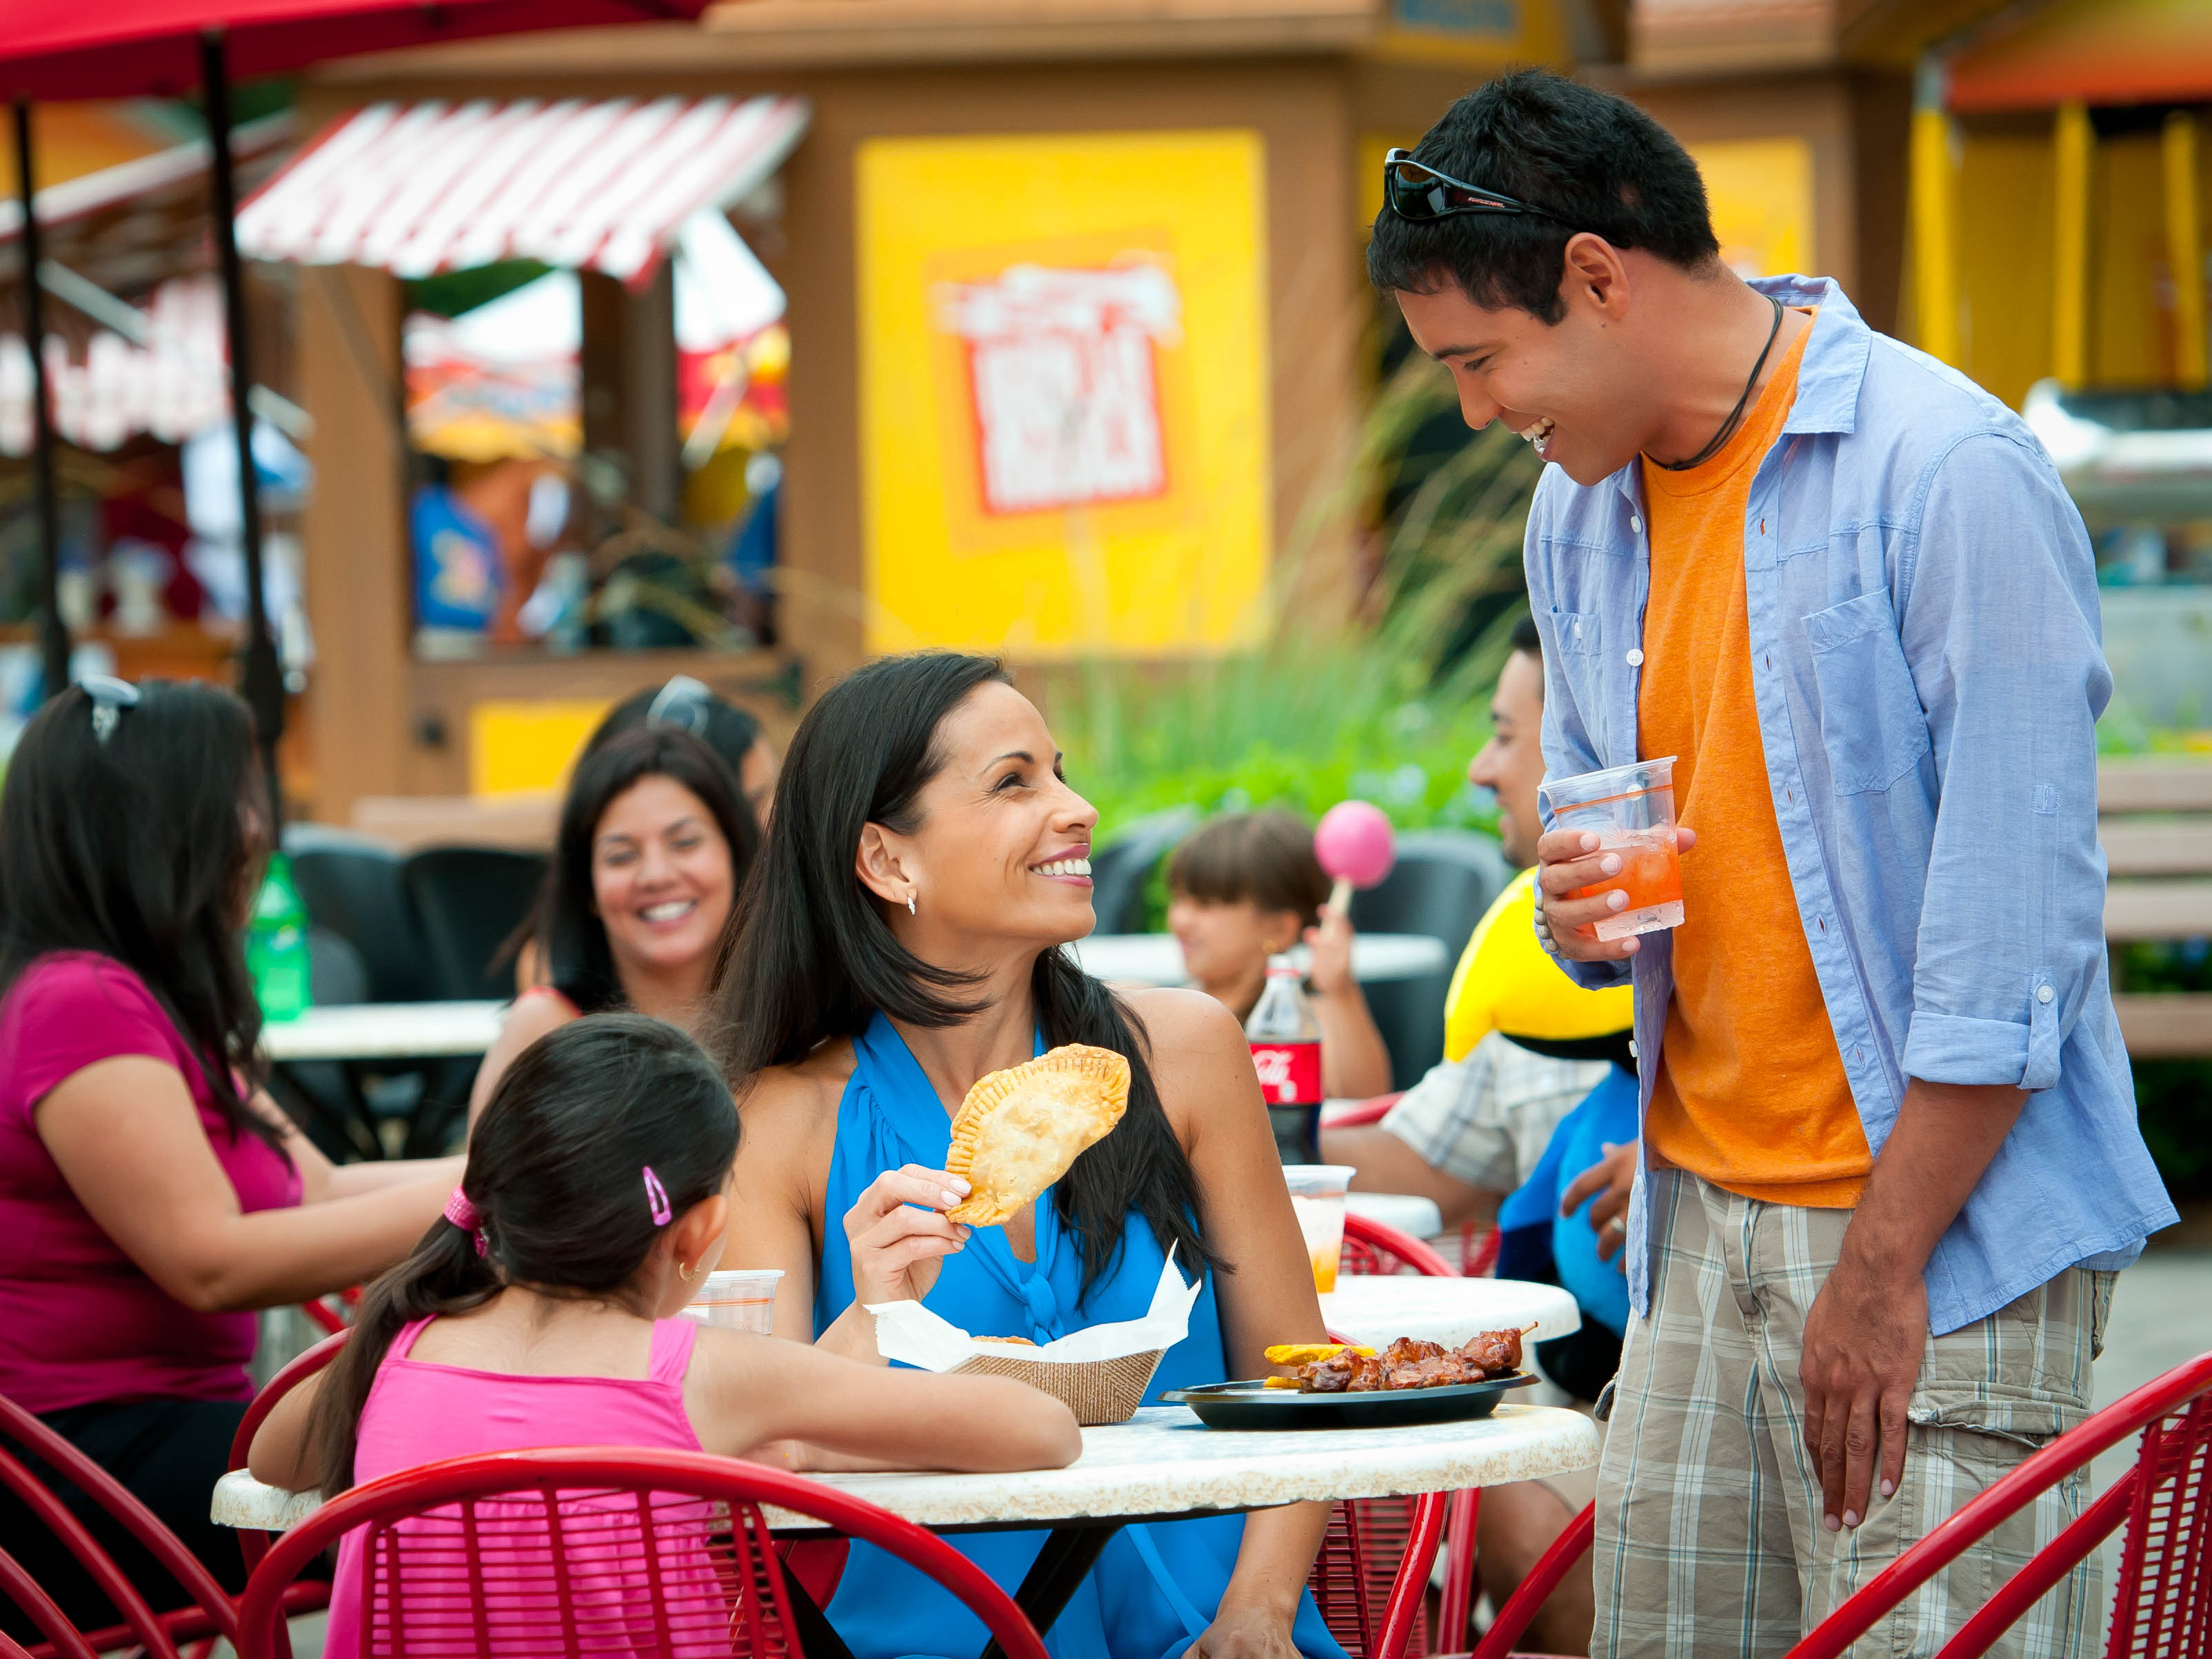 All-Day Dining Deal at SeaWorld Orlando   SeaWorld Parks Bookings